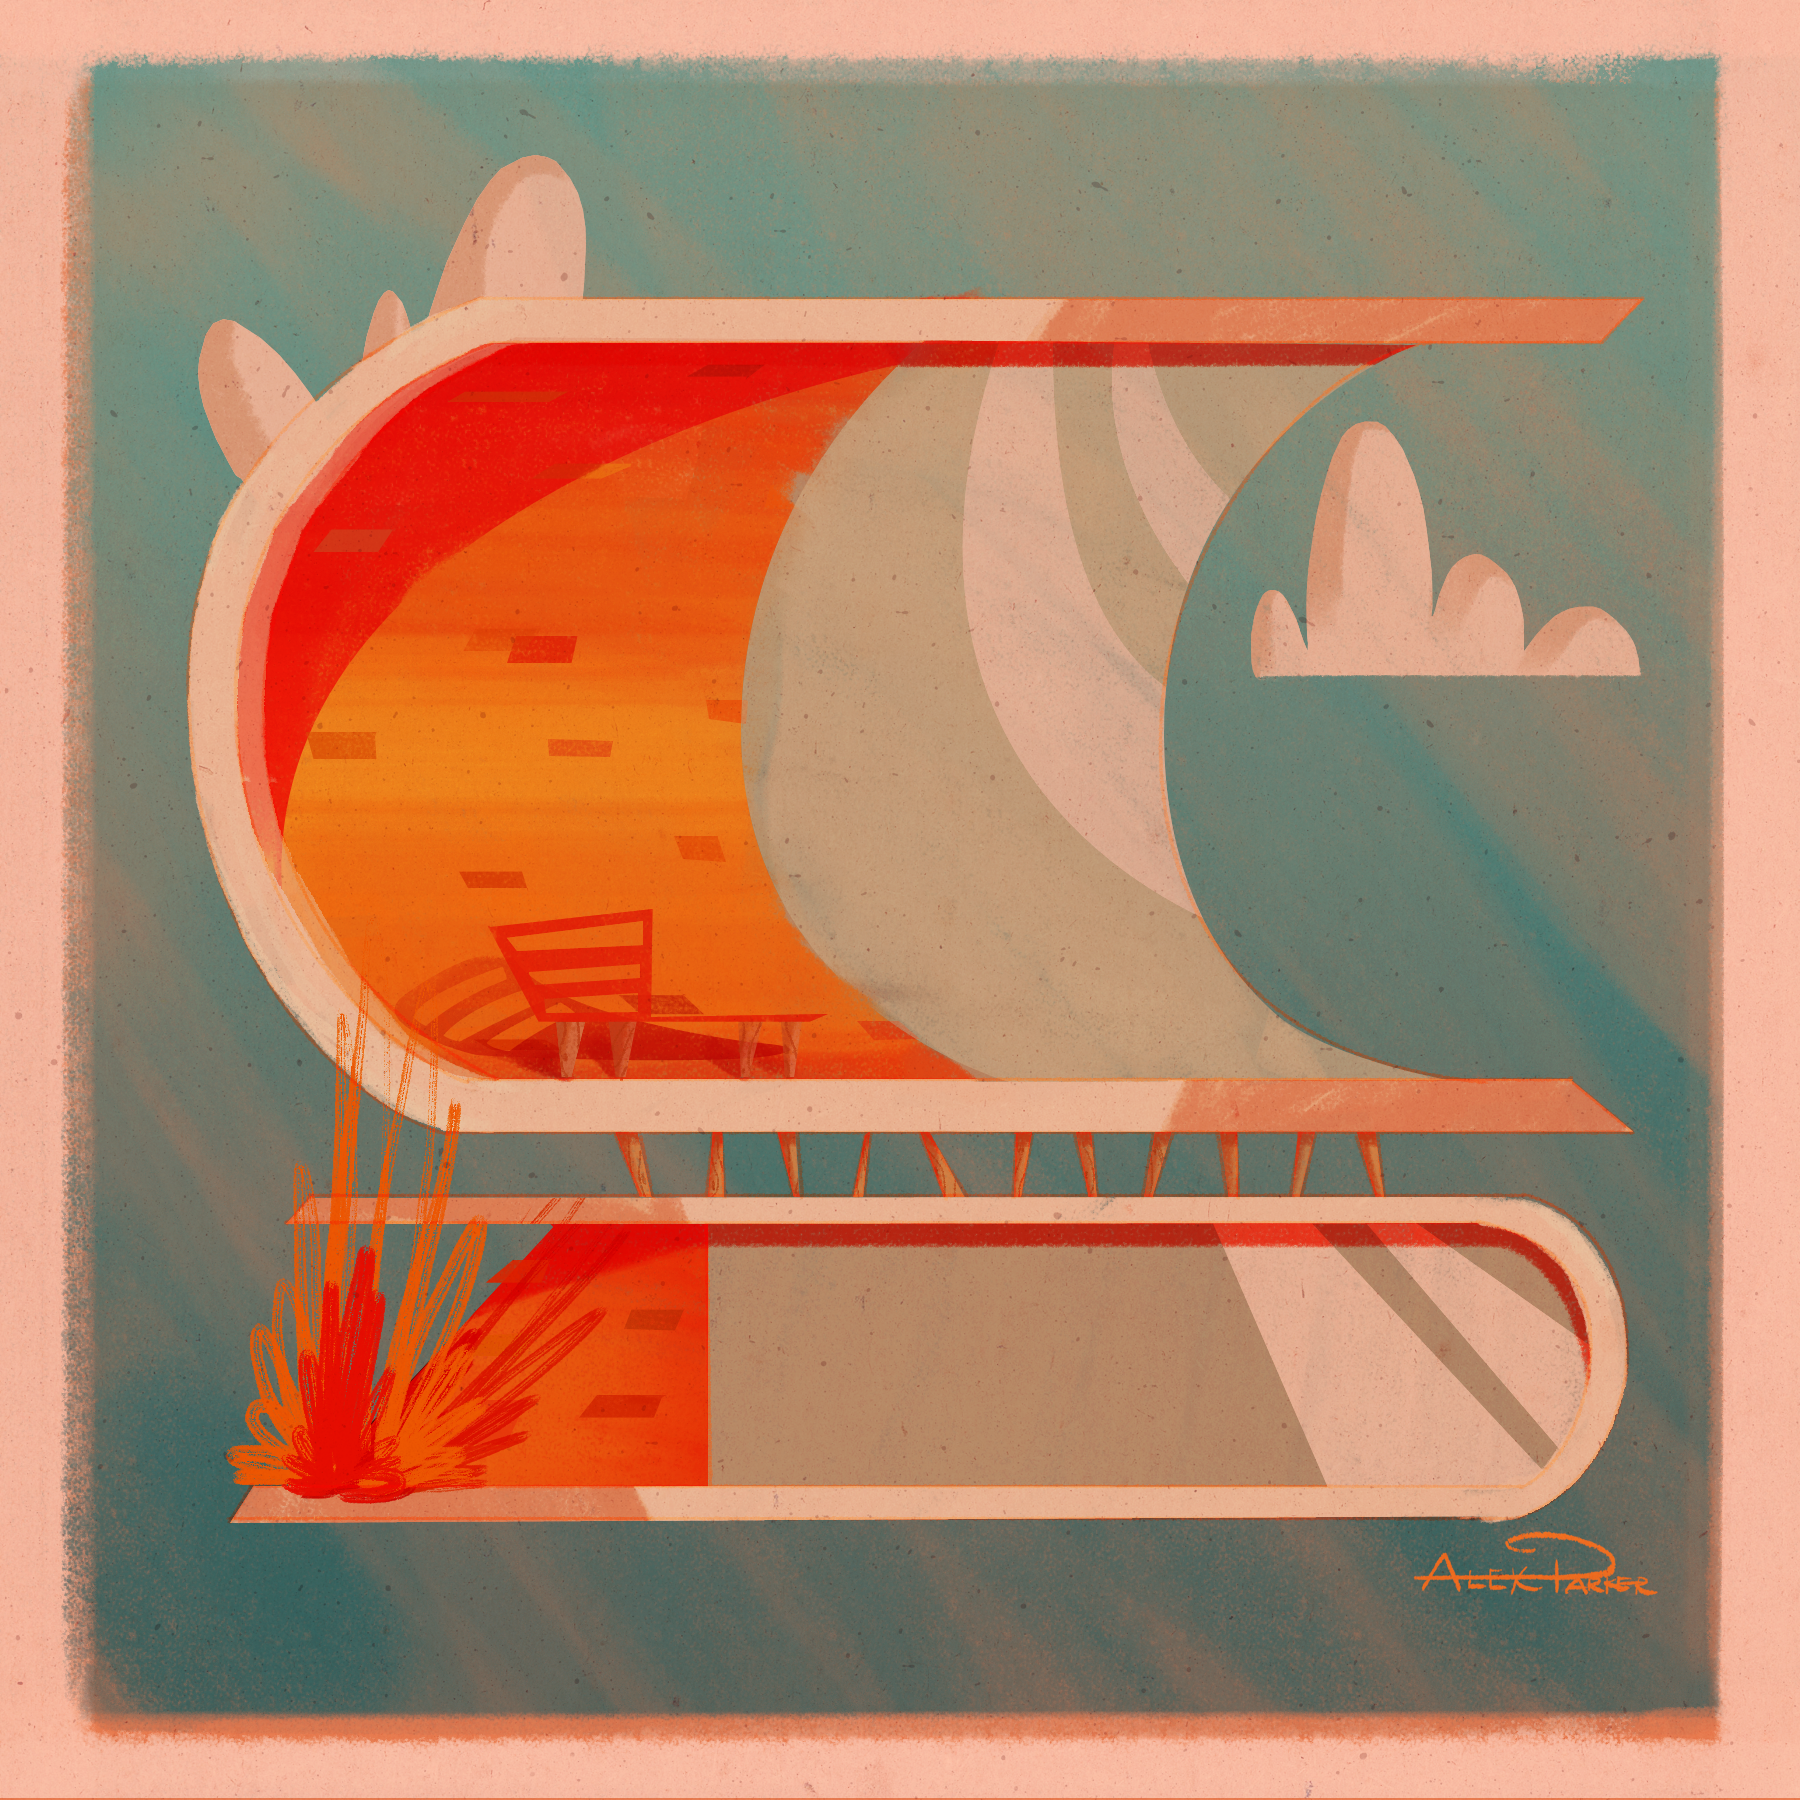 36DaysofType_S.png